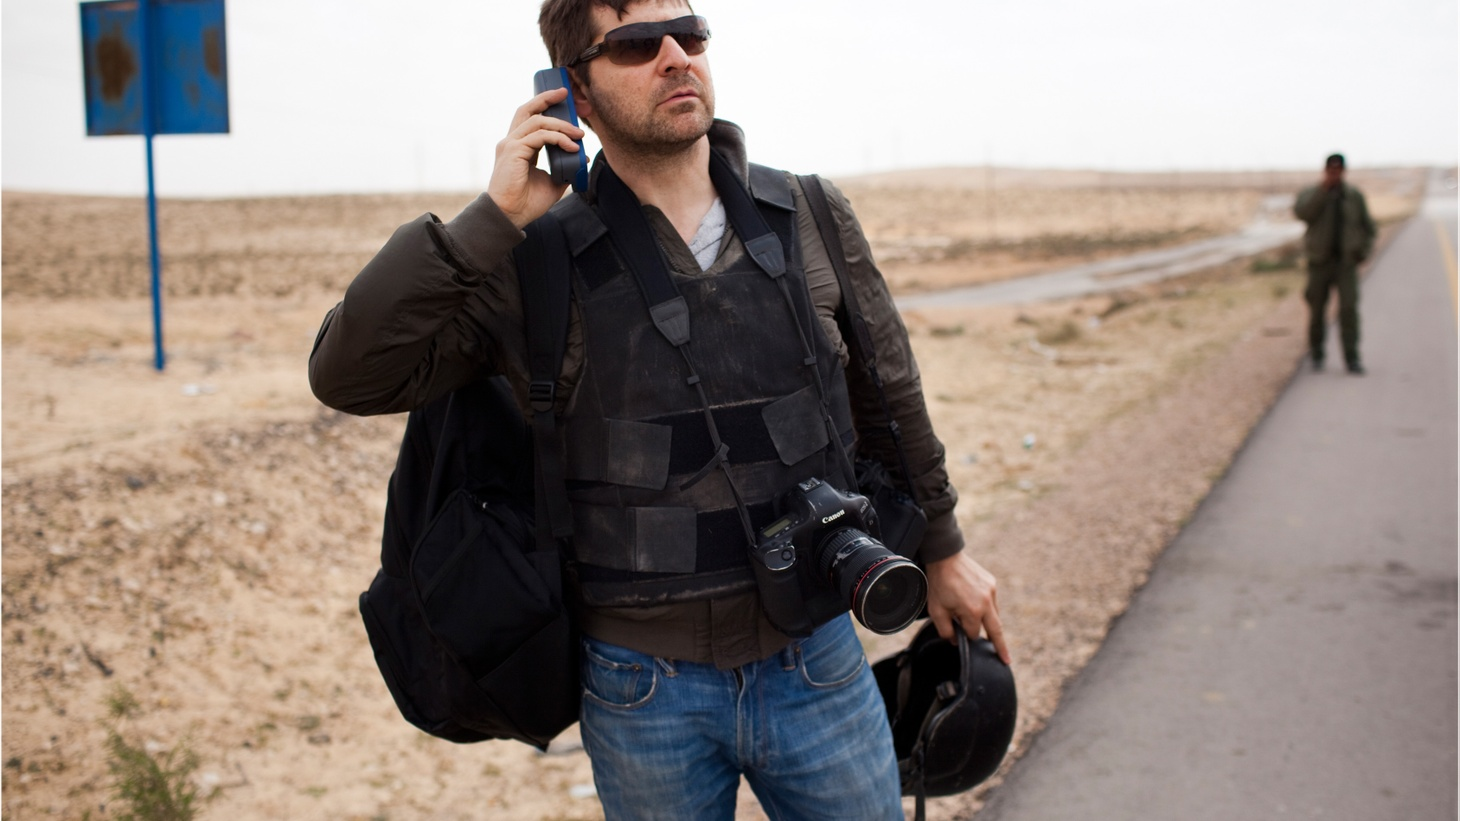 The journalist and filmmaker discusses his documentary about the late photojournalist Chris Hondros.